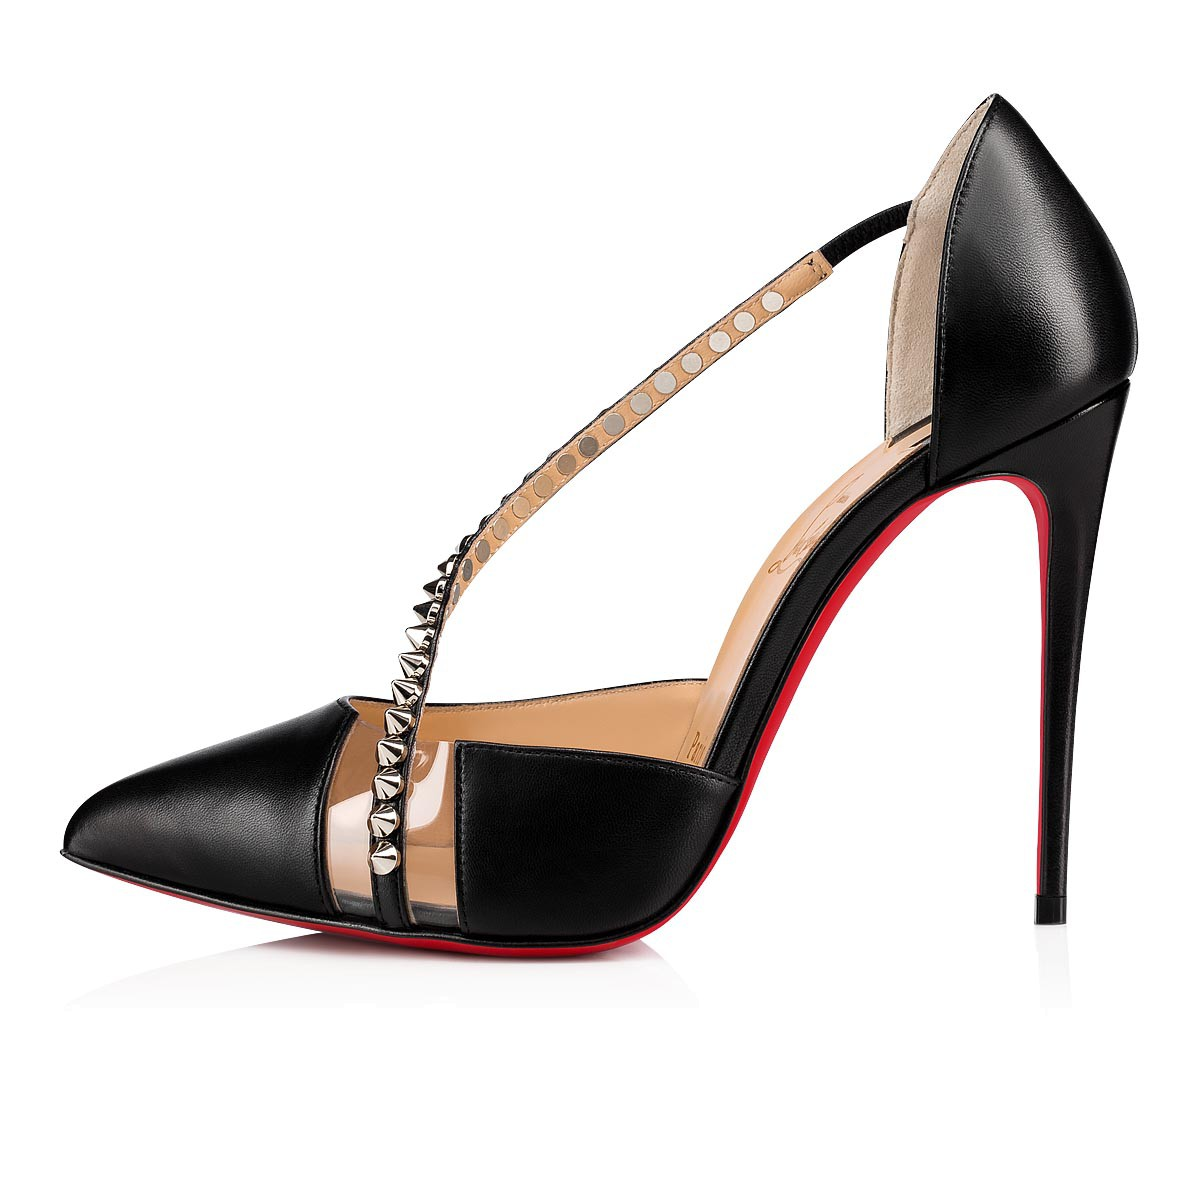 Shoes - Spike Cross - Christian Louboutin